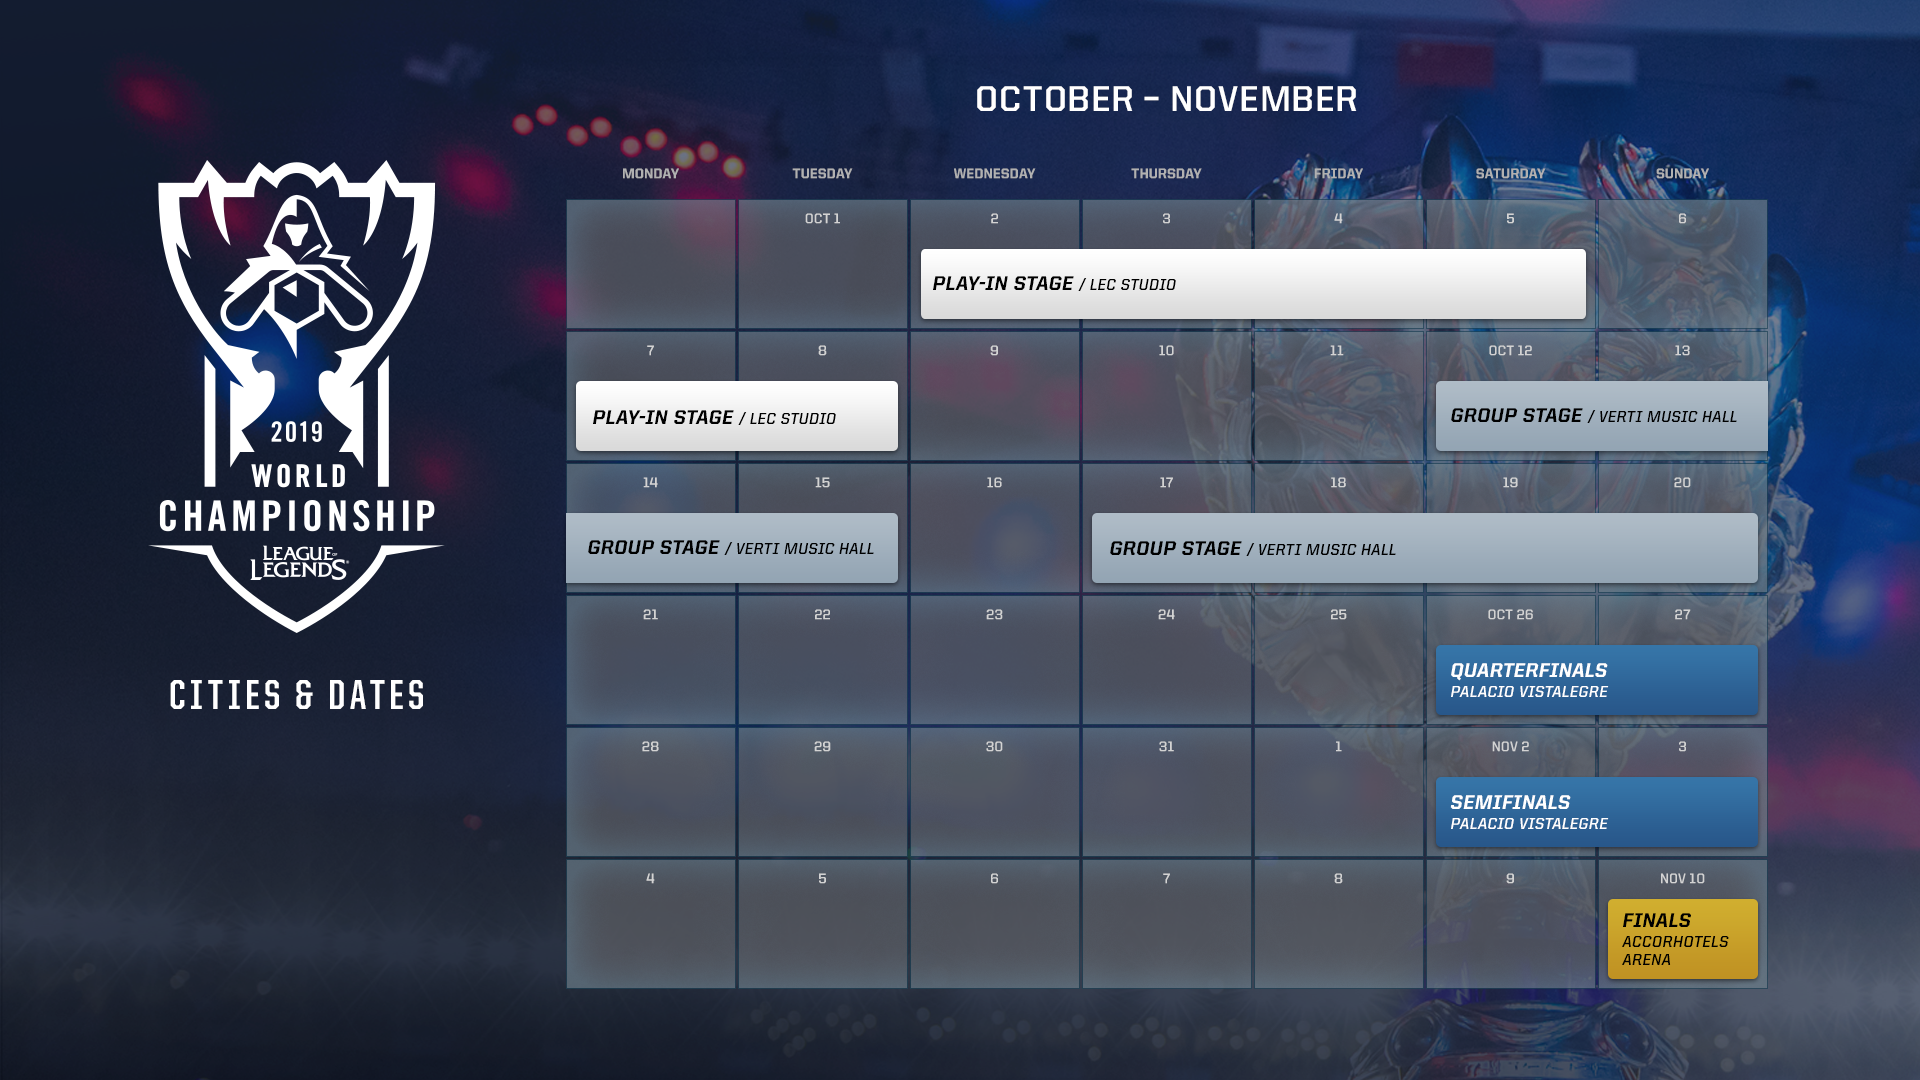 League Of Legends Worlds 2019 Schedule 2019 World Championship Cities, Venues, & Dates – League of Legends